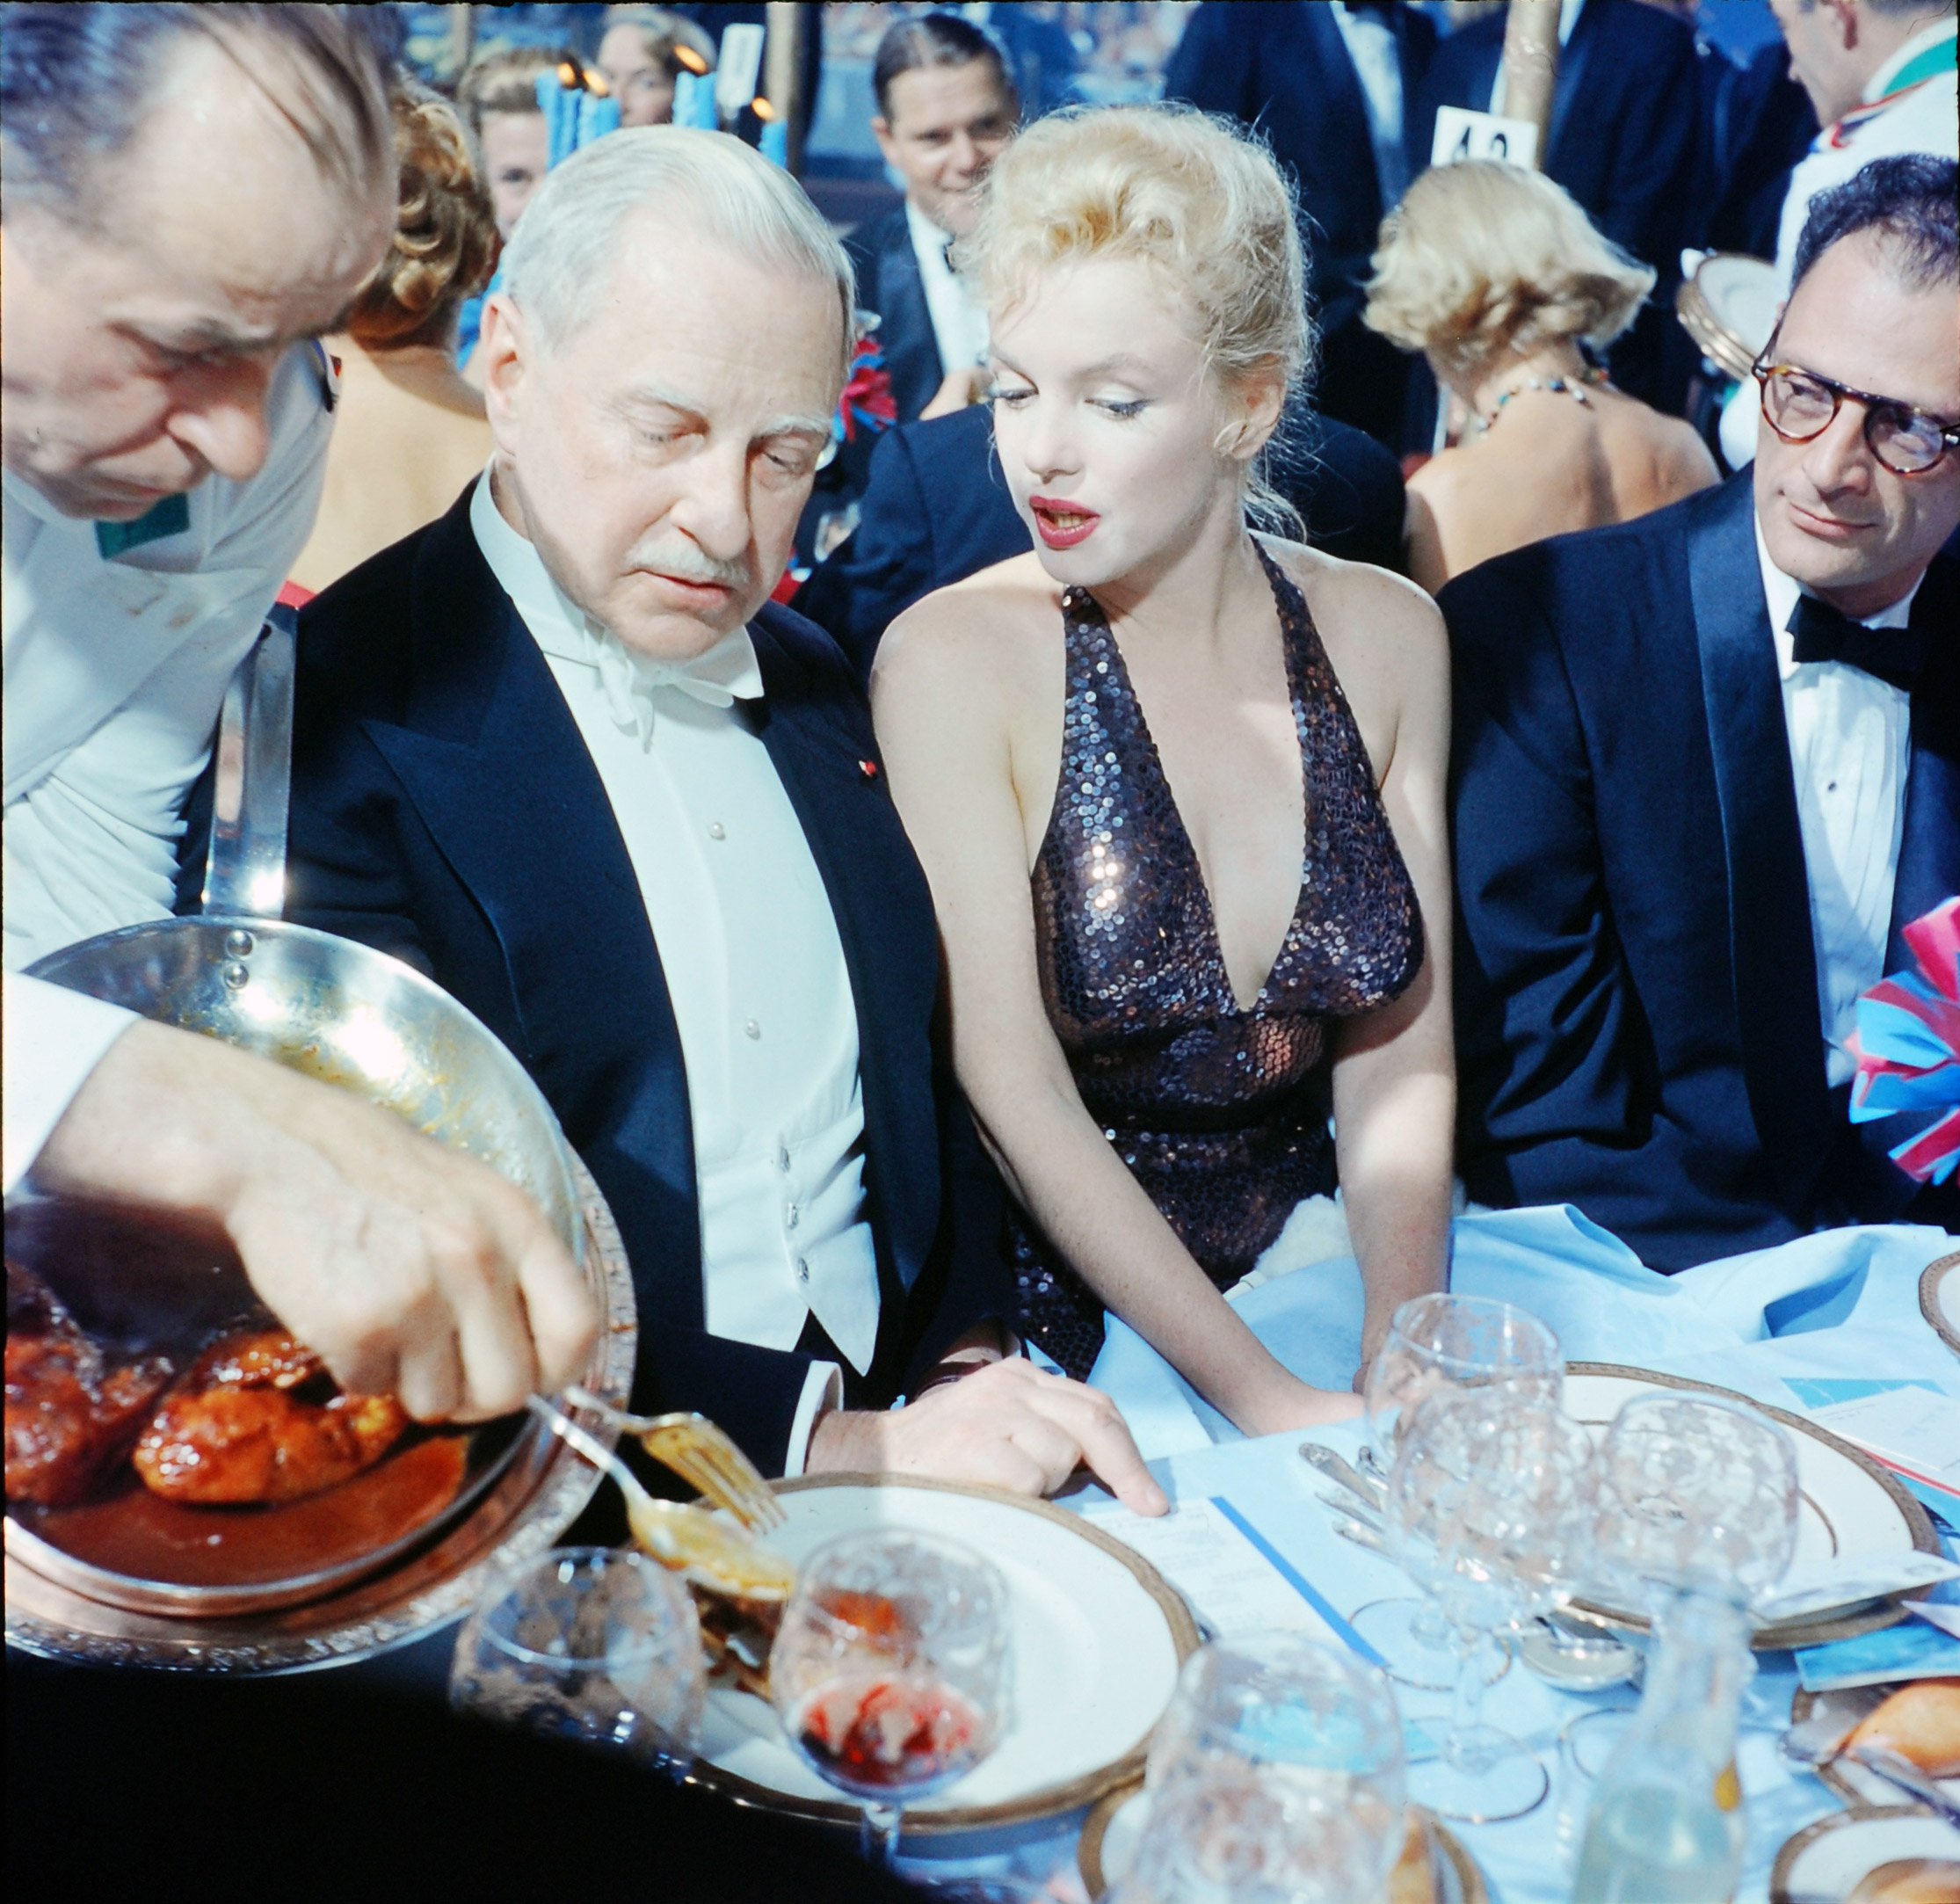 Ambassador Winthrop Aldrich, ex-envoy to Britain, chats with Marilyn Monroe as her husband, Arthur Miller, looks on at the April in Paris Ball, Waldorf Astoria Hotel, 1957.